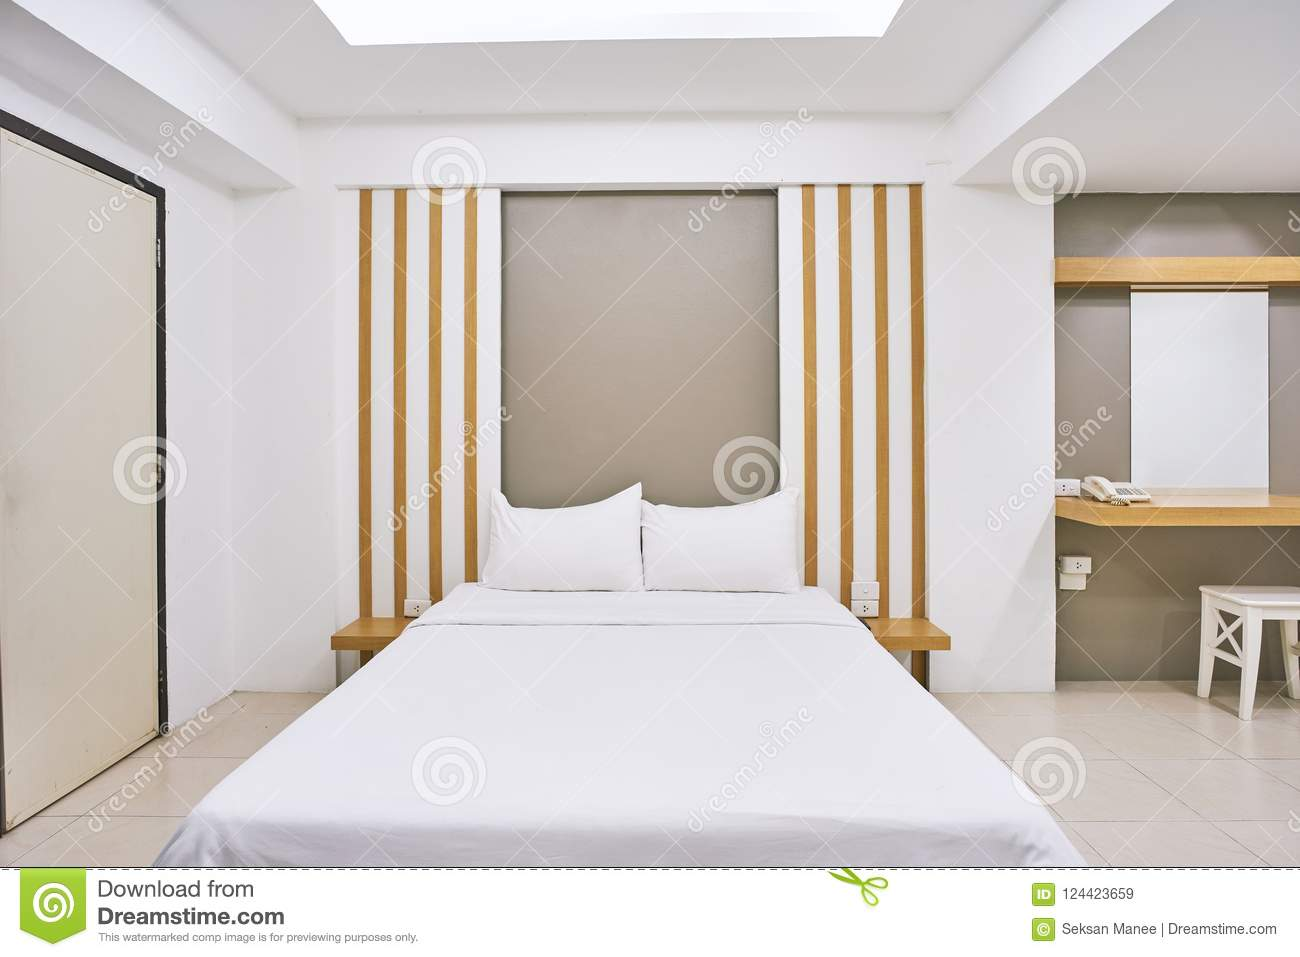 Decoration Chambre Hotel Bedroom Interior Decoration Mock Up For Hotel Apartment Stock